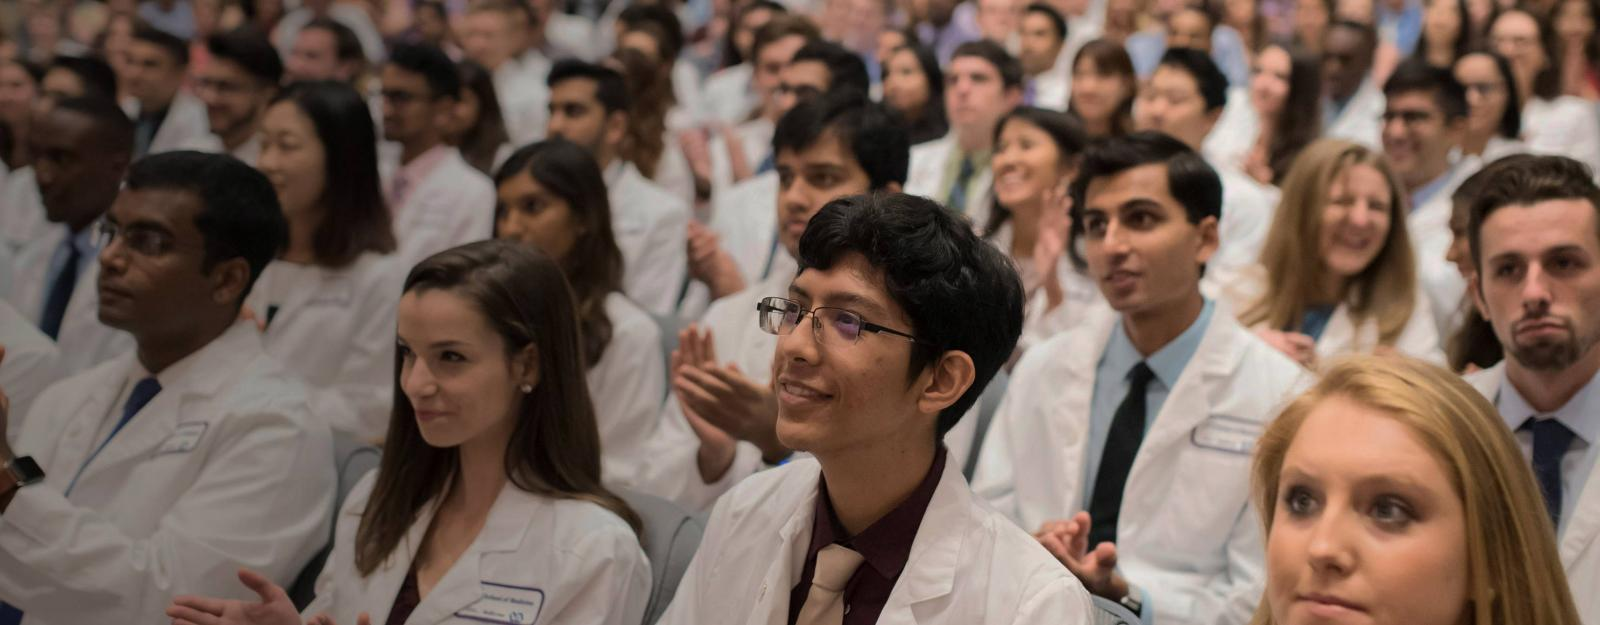 NYU Medical Students At White Coat Ceremony